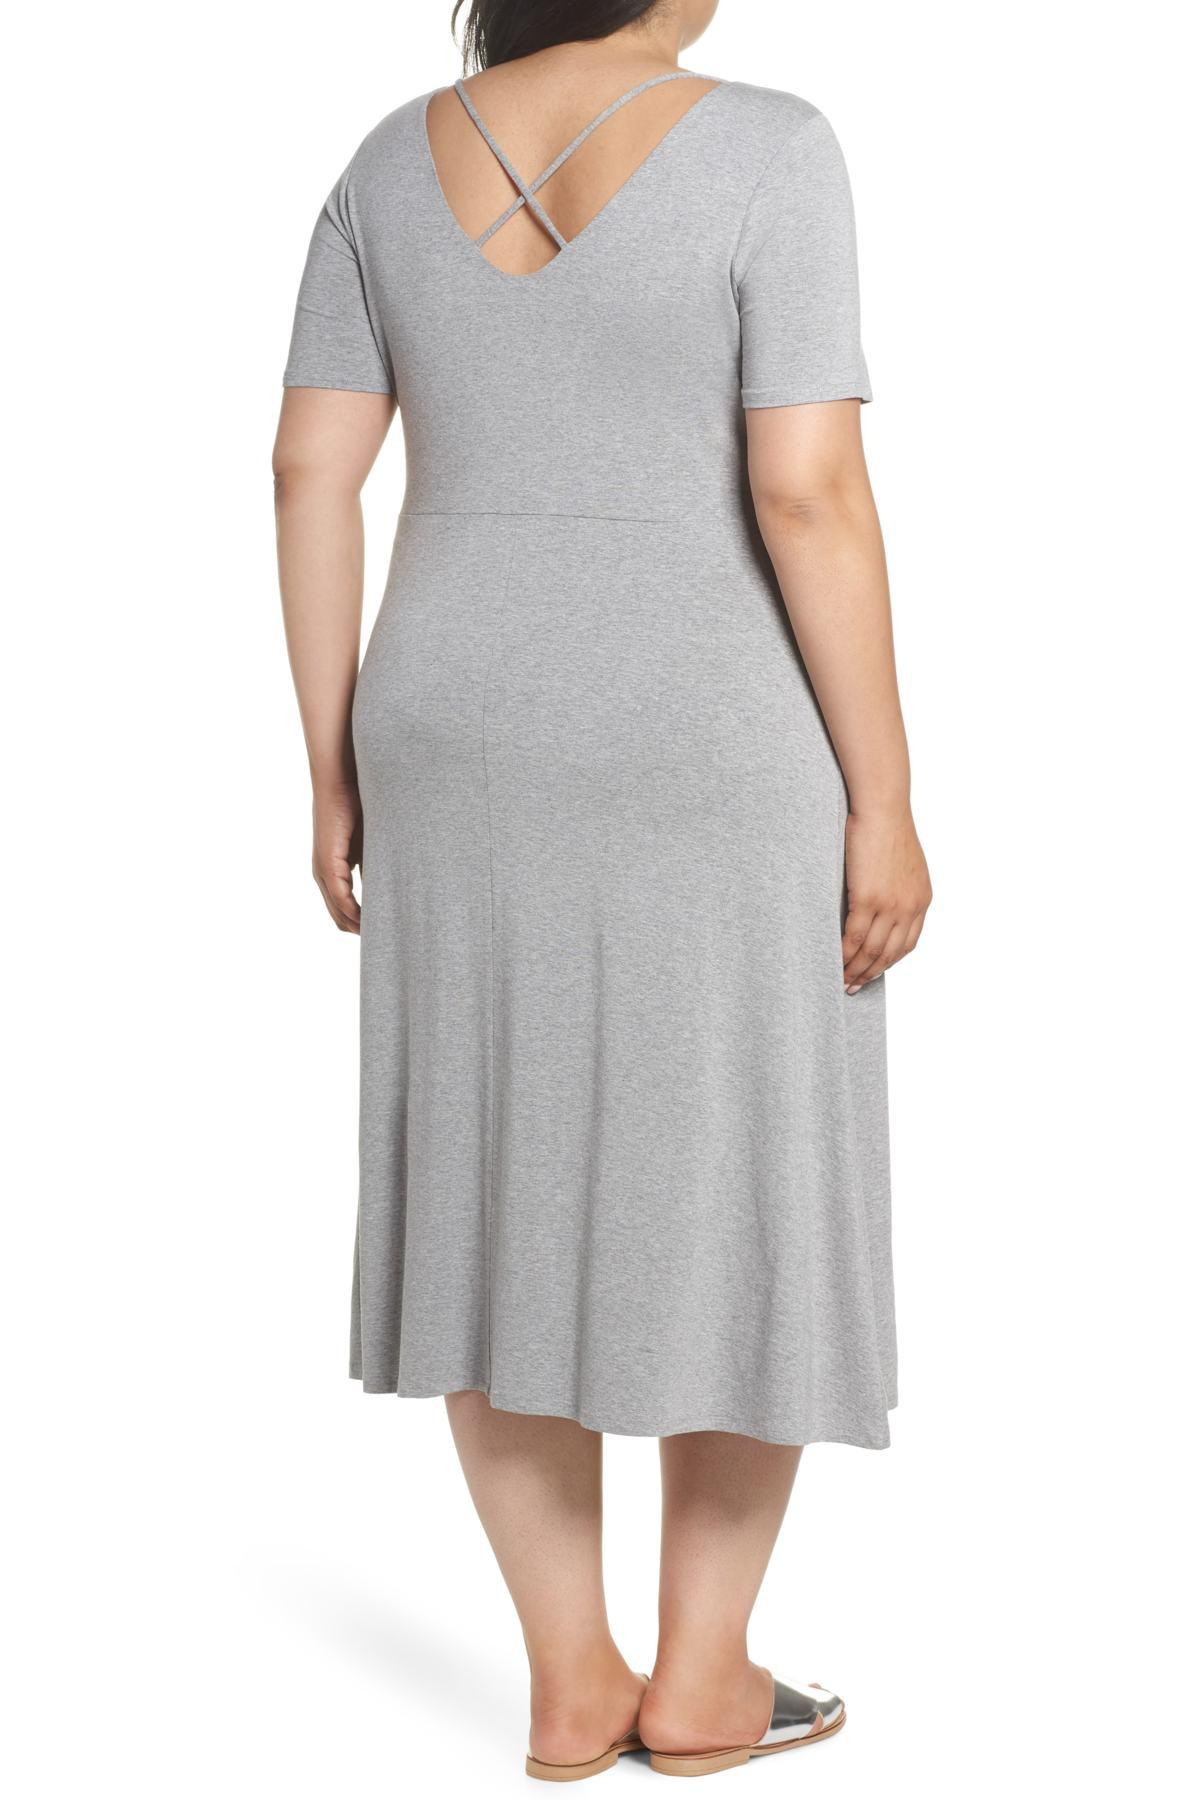 0214b08a1badb Lyst - Vince Camuto Cross Back Jersey A-line Dress (plus Size) in Gray